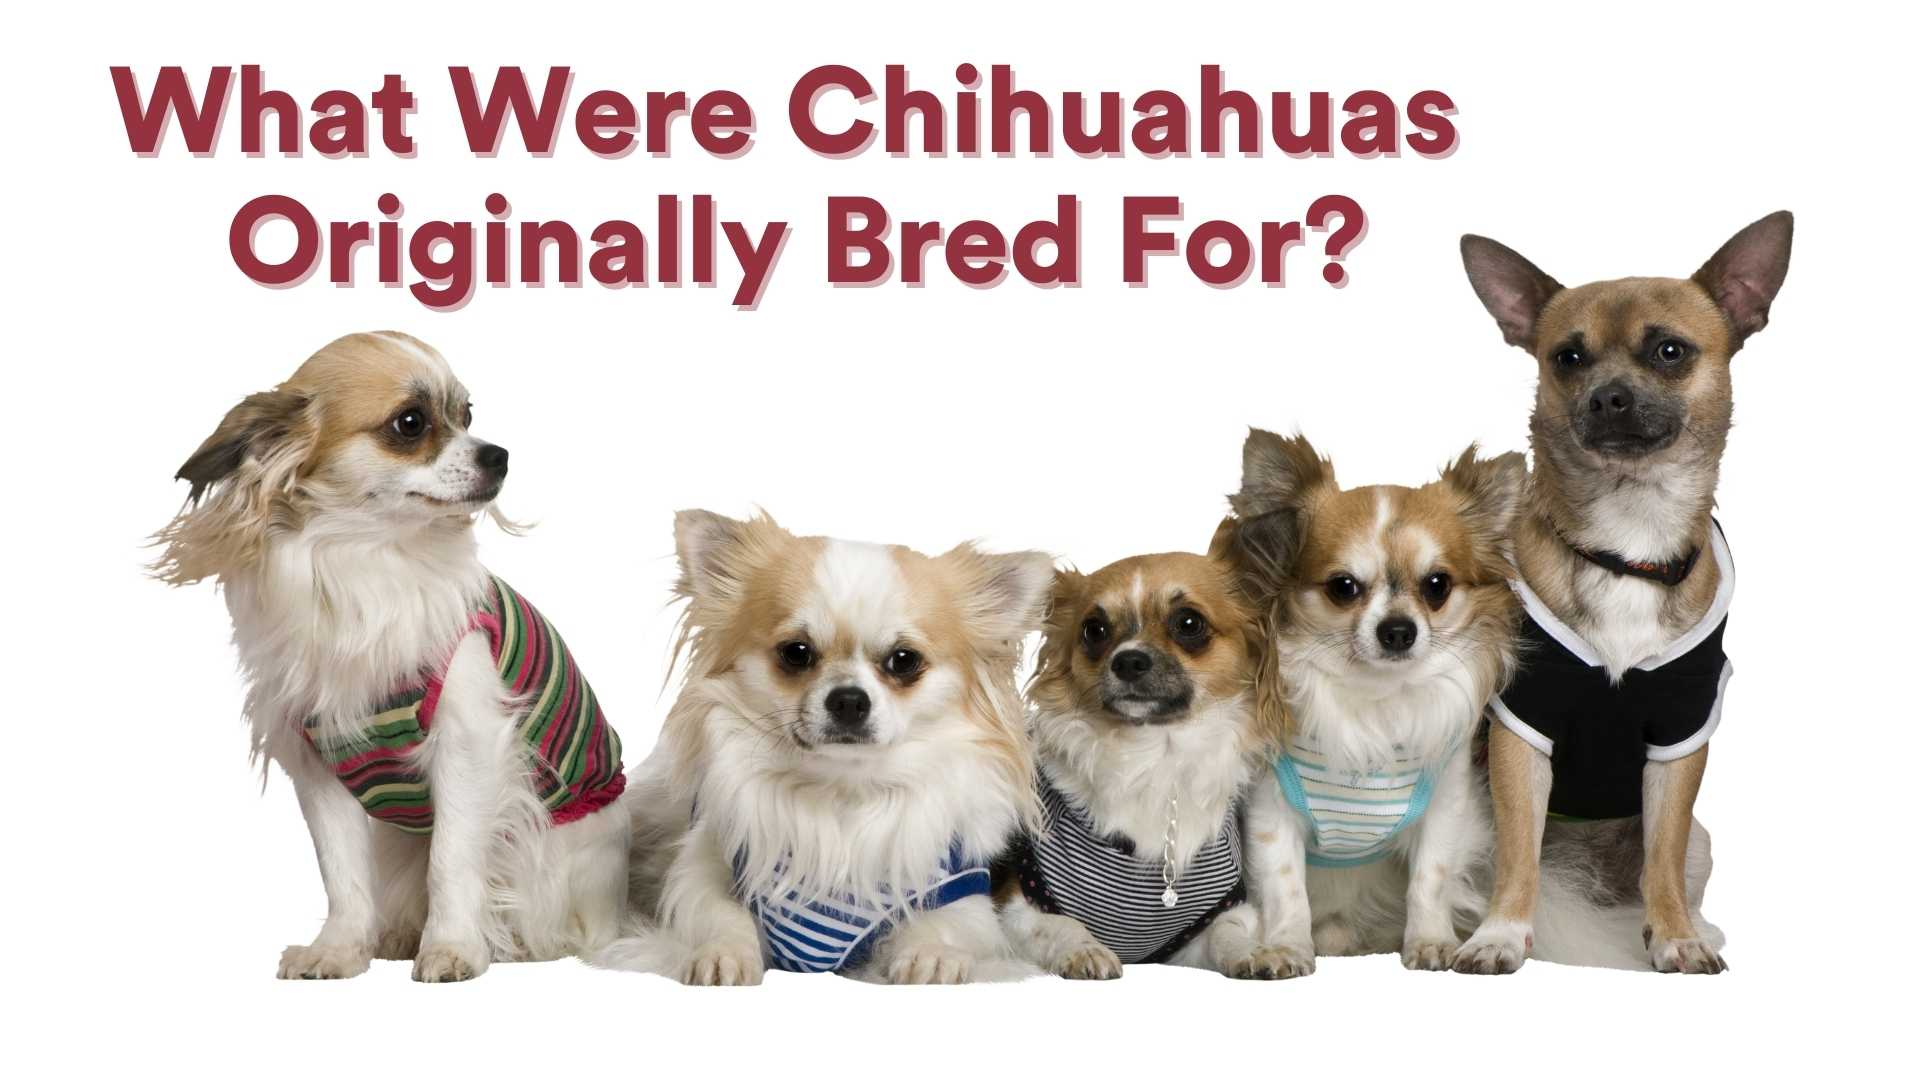 What Were Chihuahuas Originally Bred For?